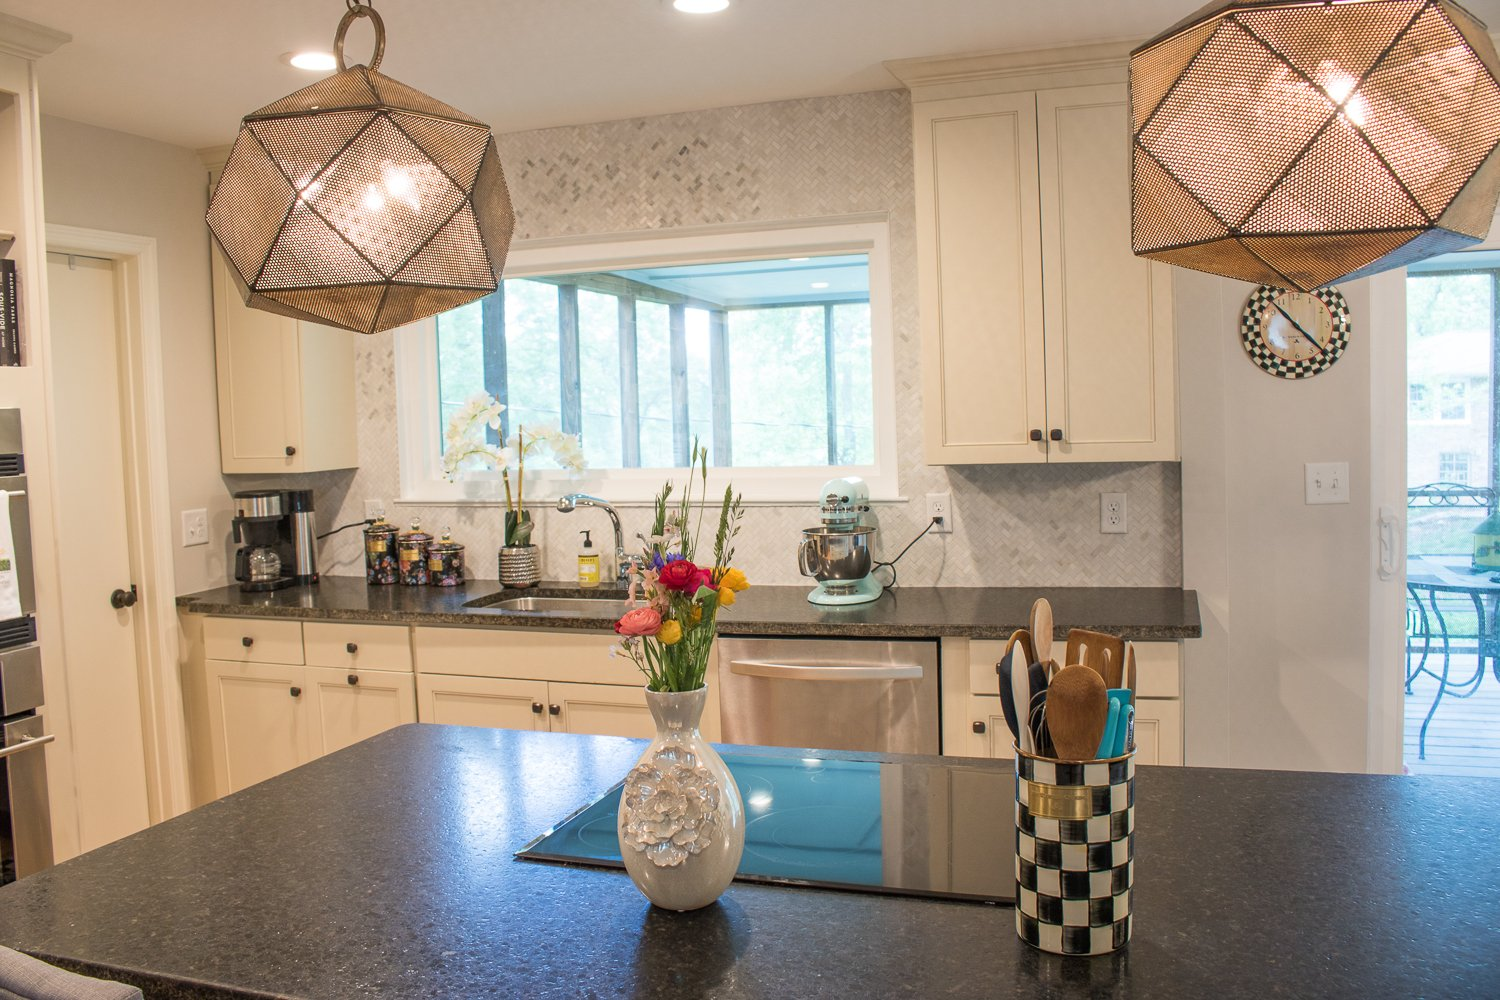 Home Remodel 3 A Byers Guide